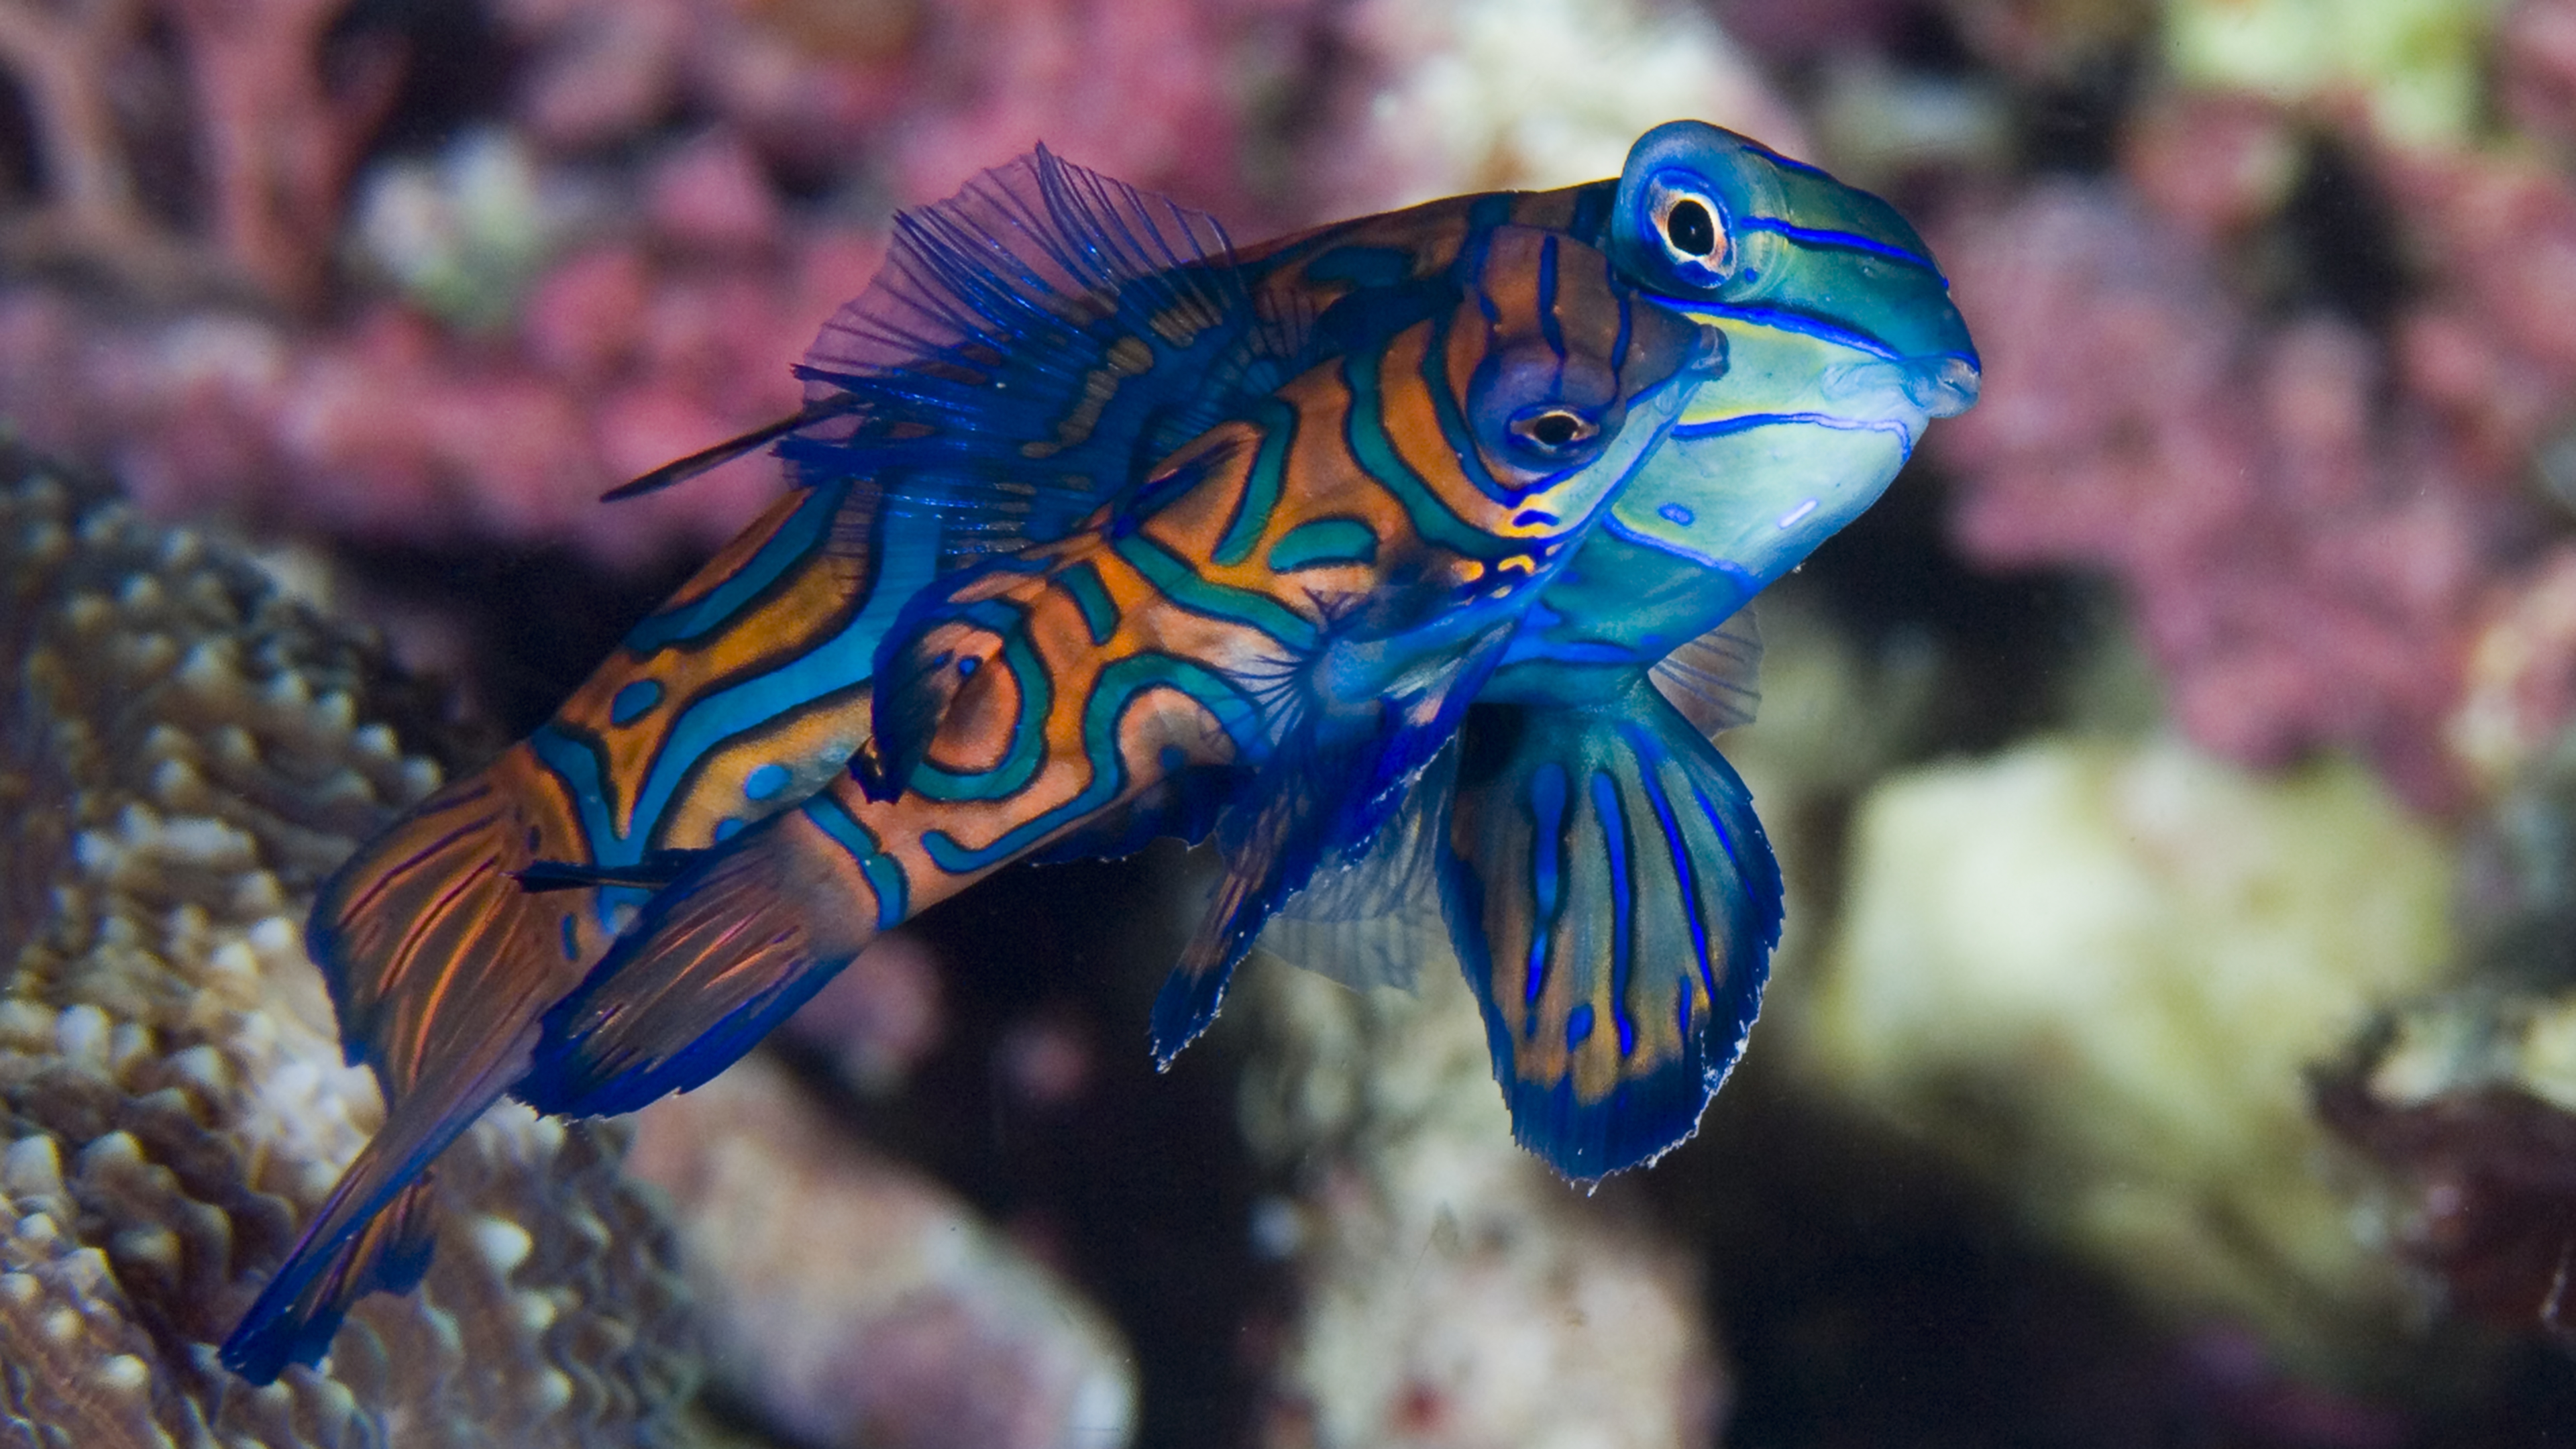 Mating Time of the Mandarin Fish